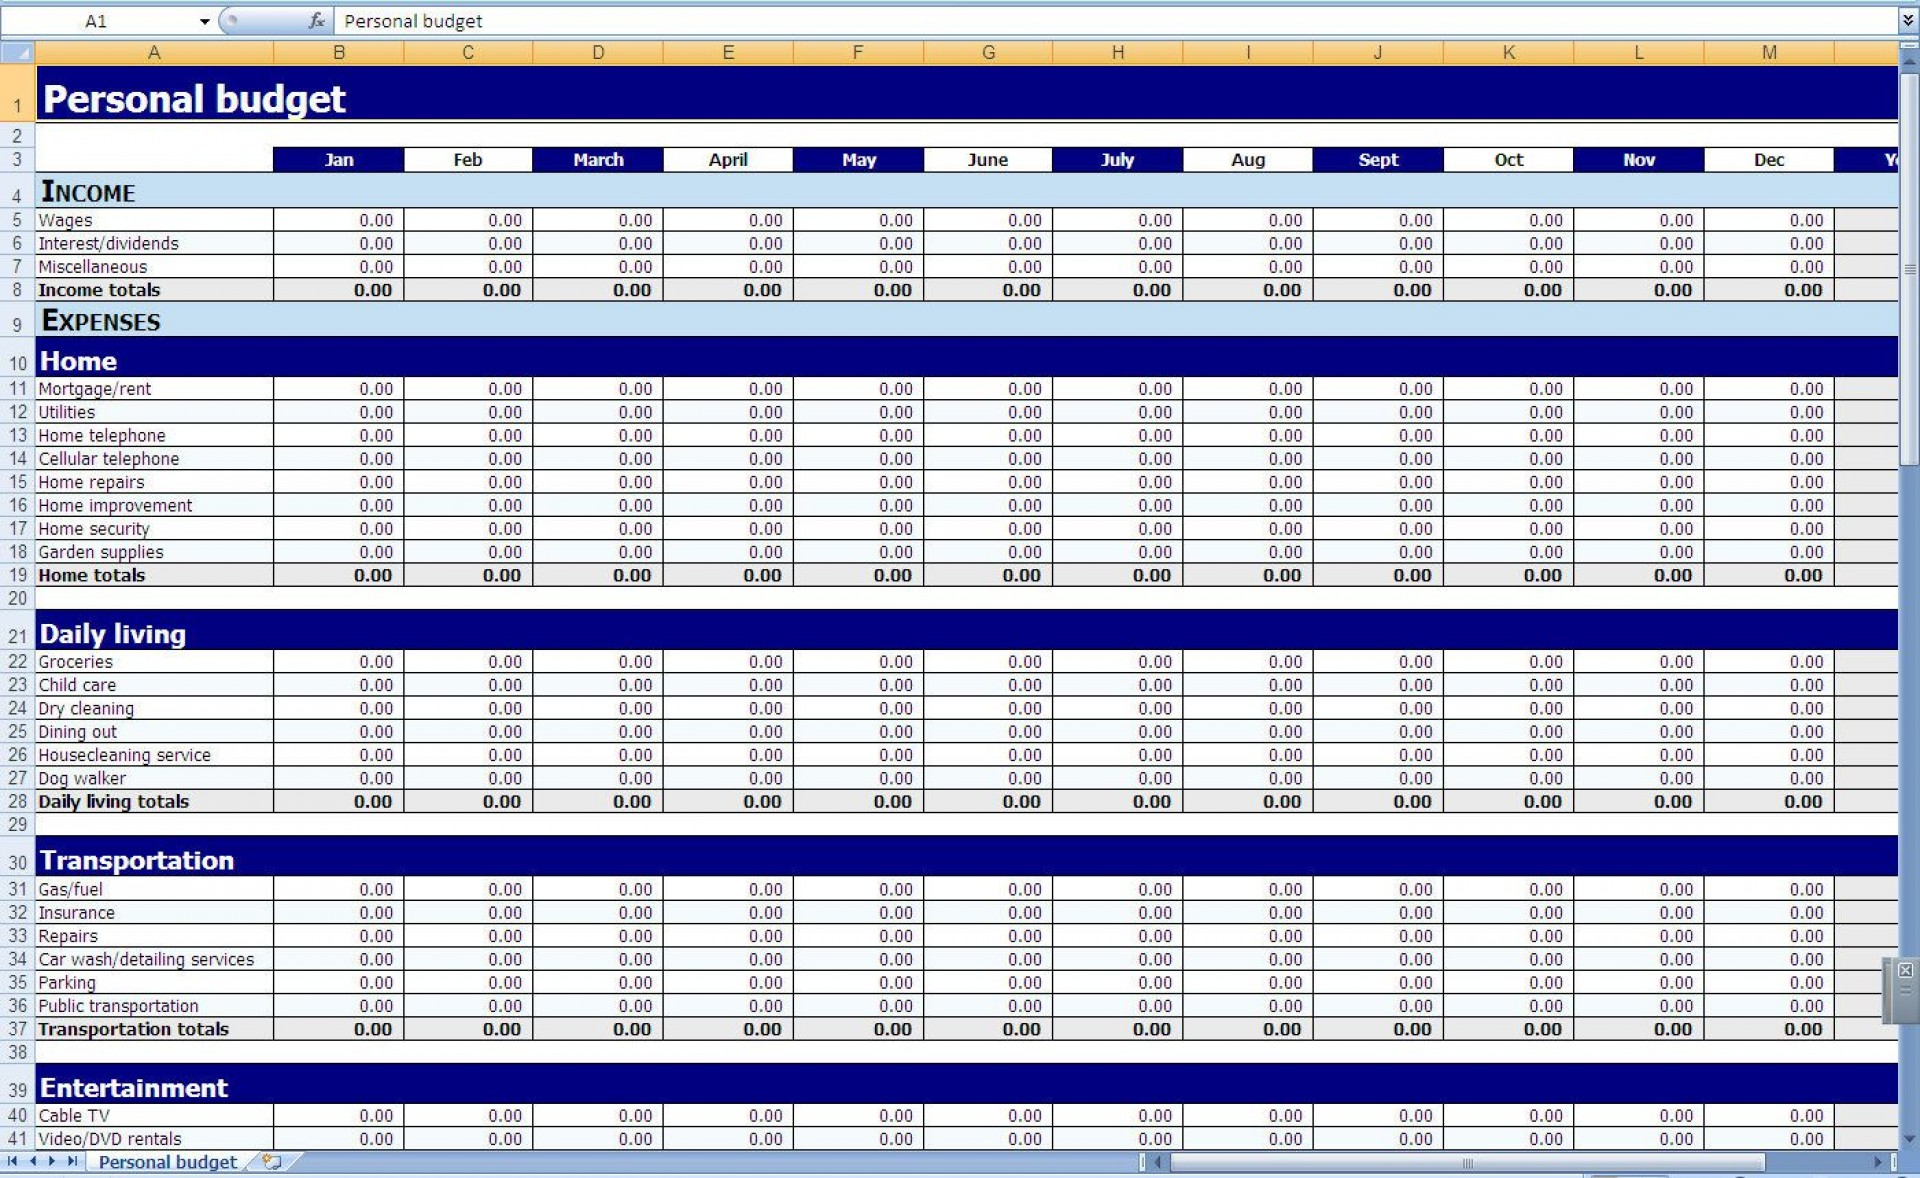 009 Shocking Monthly Budget Template Excel 2007 Concept  Personal1920